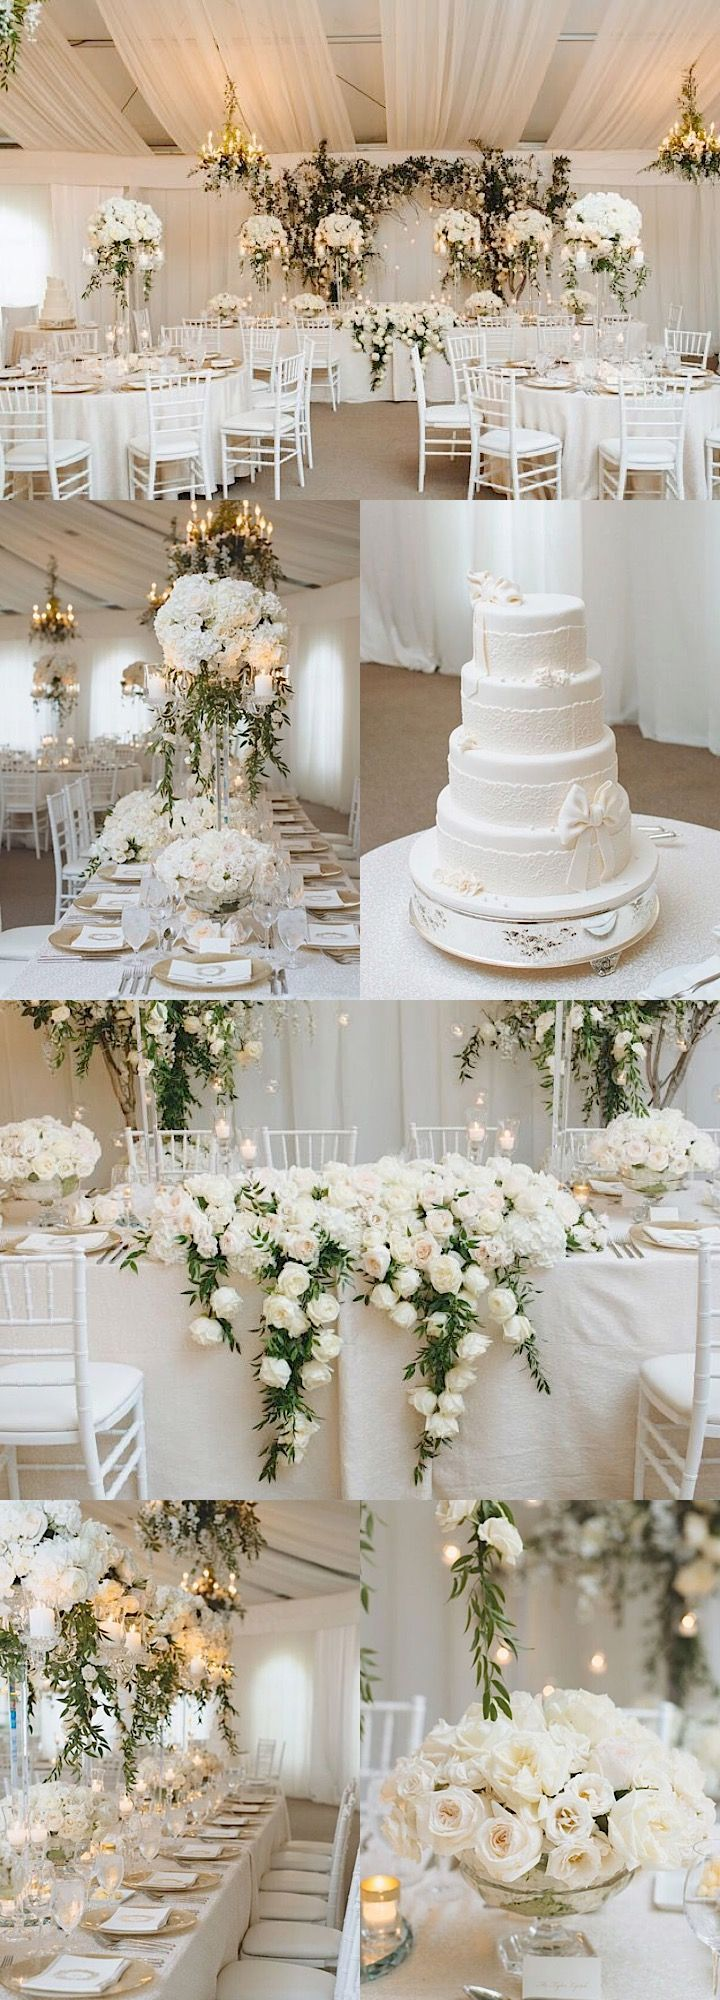 Best 25 classic wedding decor ideas on pinterest champagne elegant white wedding reception idea photo mango studios junglespirit Choice Image